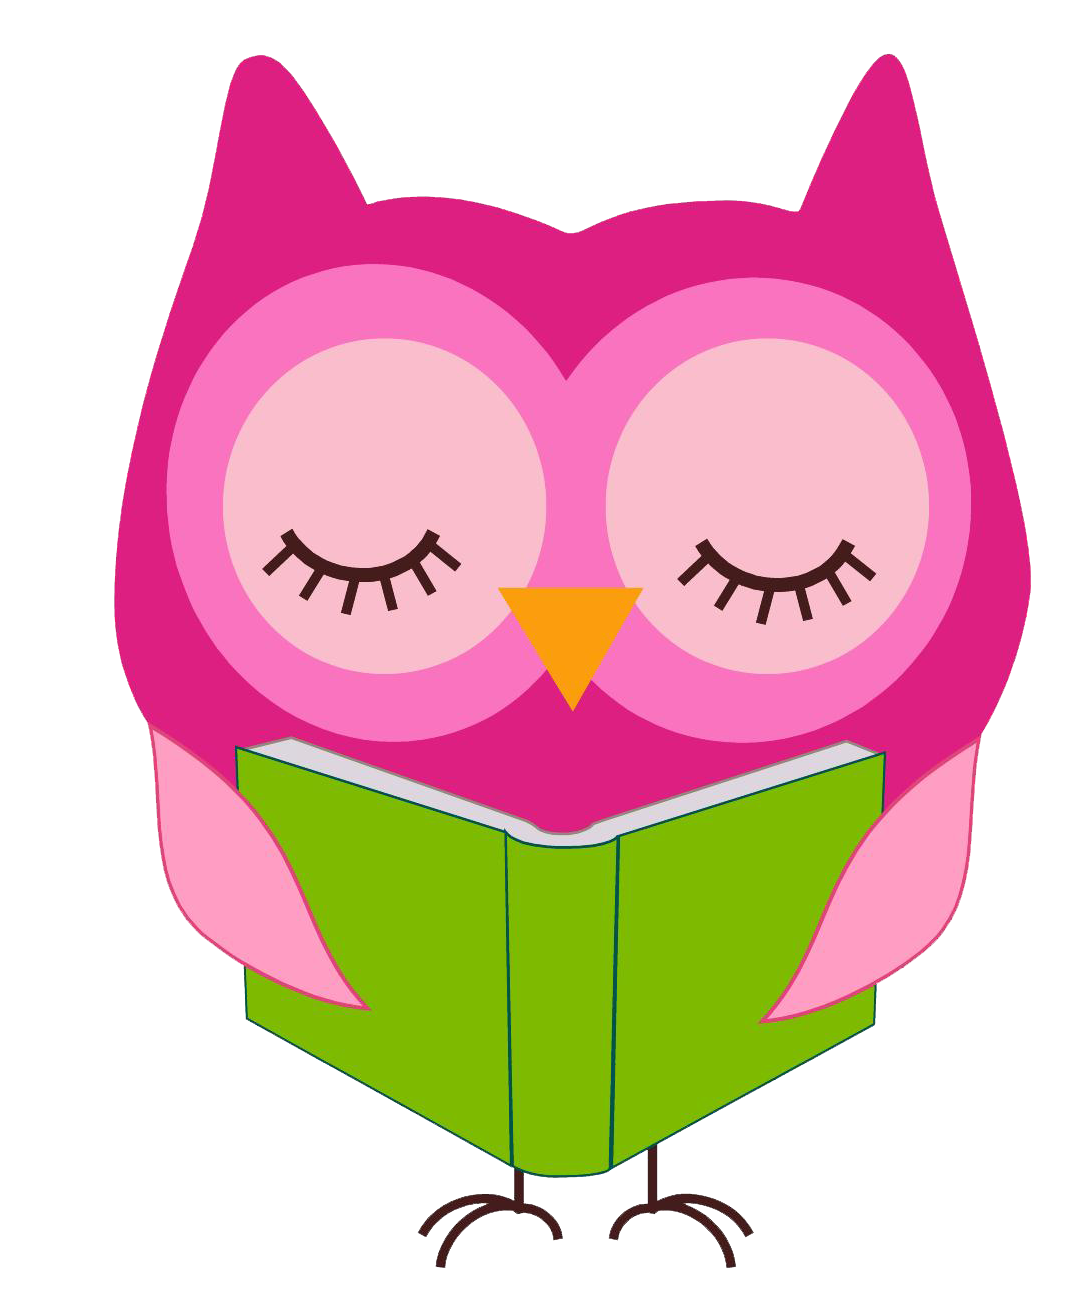 owl reading clip art cliparts co pinteres rh pinterest com owl reading clipart black and white owl reading book clipart